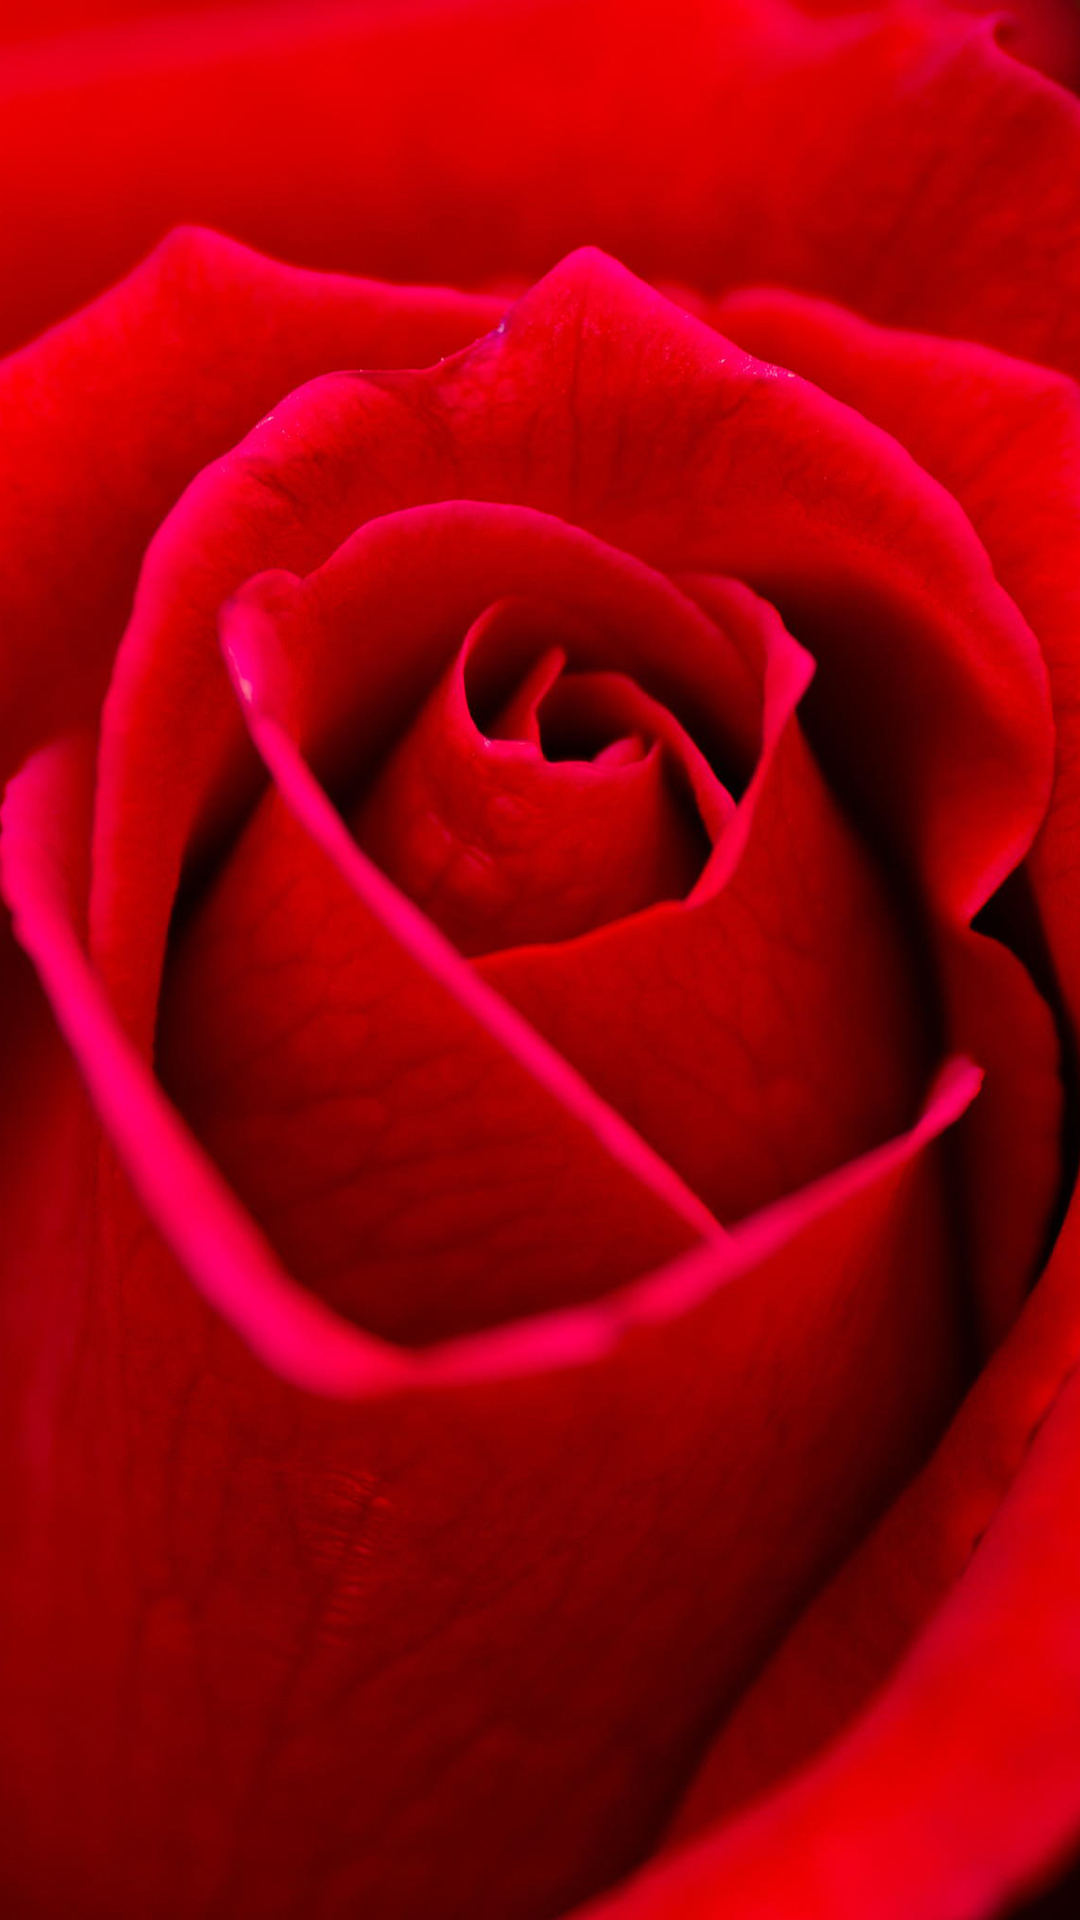 Rose Best Htc One Wallpapers Free And Easy To Download